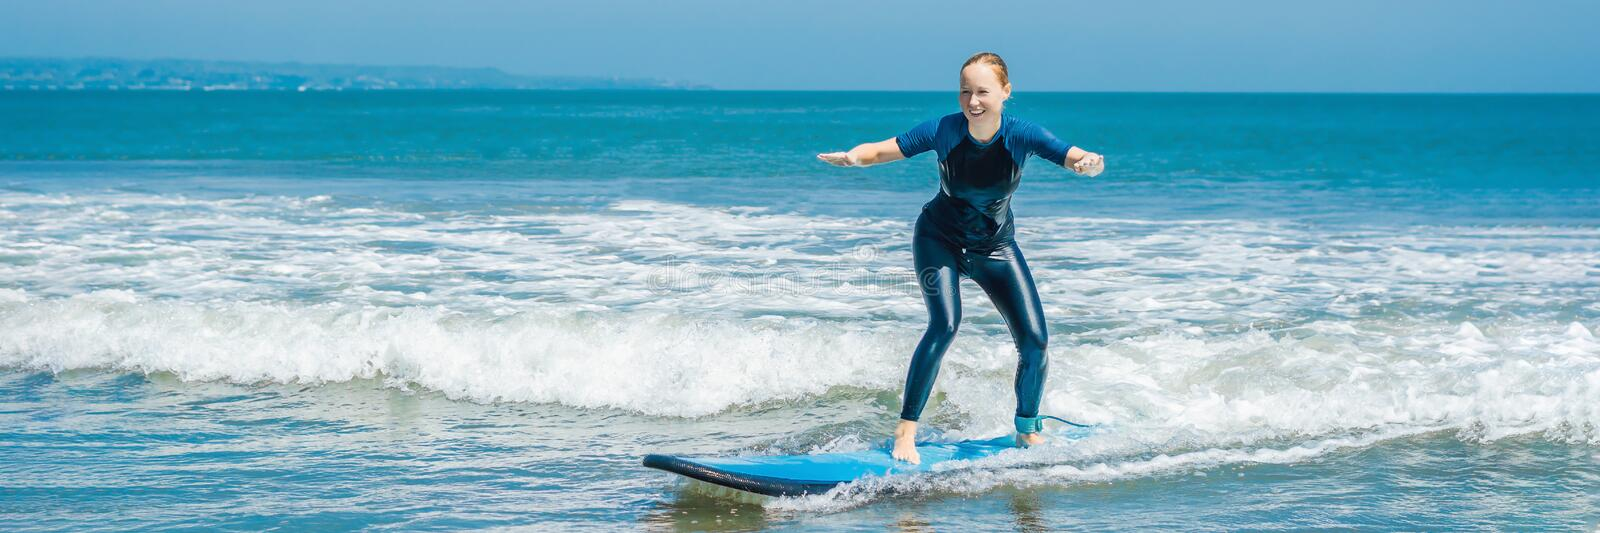 Joyful young woman beginner surfer with blue surf has fun on small sea waves. Active family lifestyle, people outdoor. Water sport lesson and swimming activity royalty free stock photos